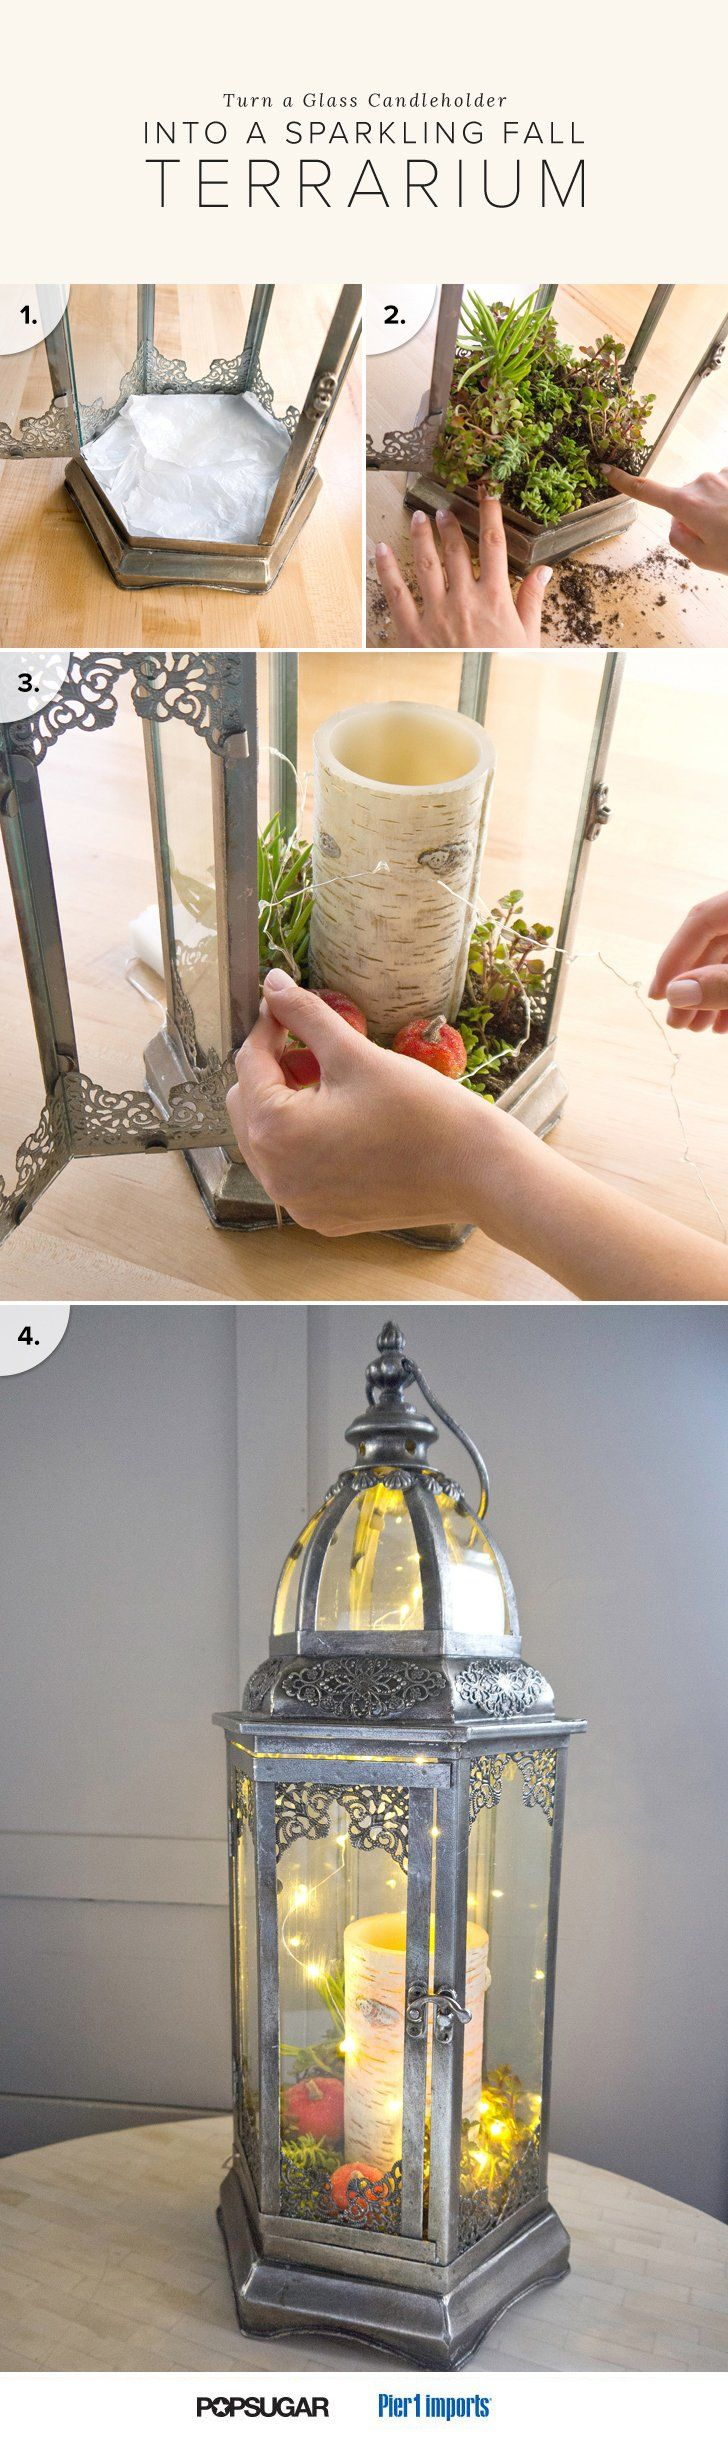 Turn a glass candle holder into a sparkling fall terrarium lantern